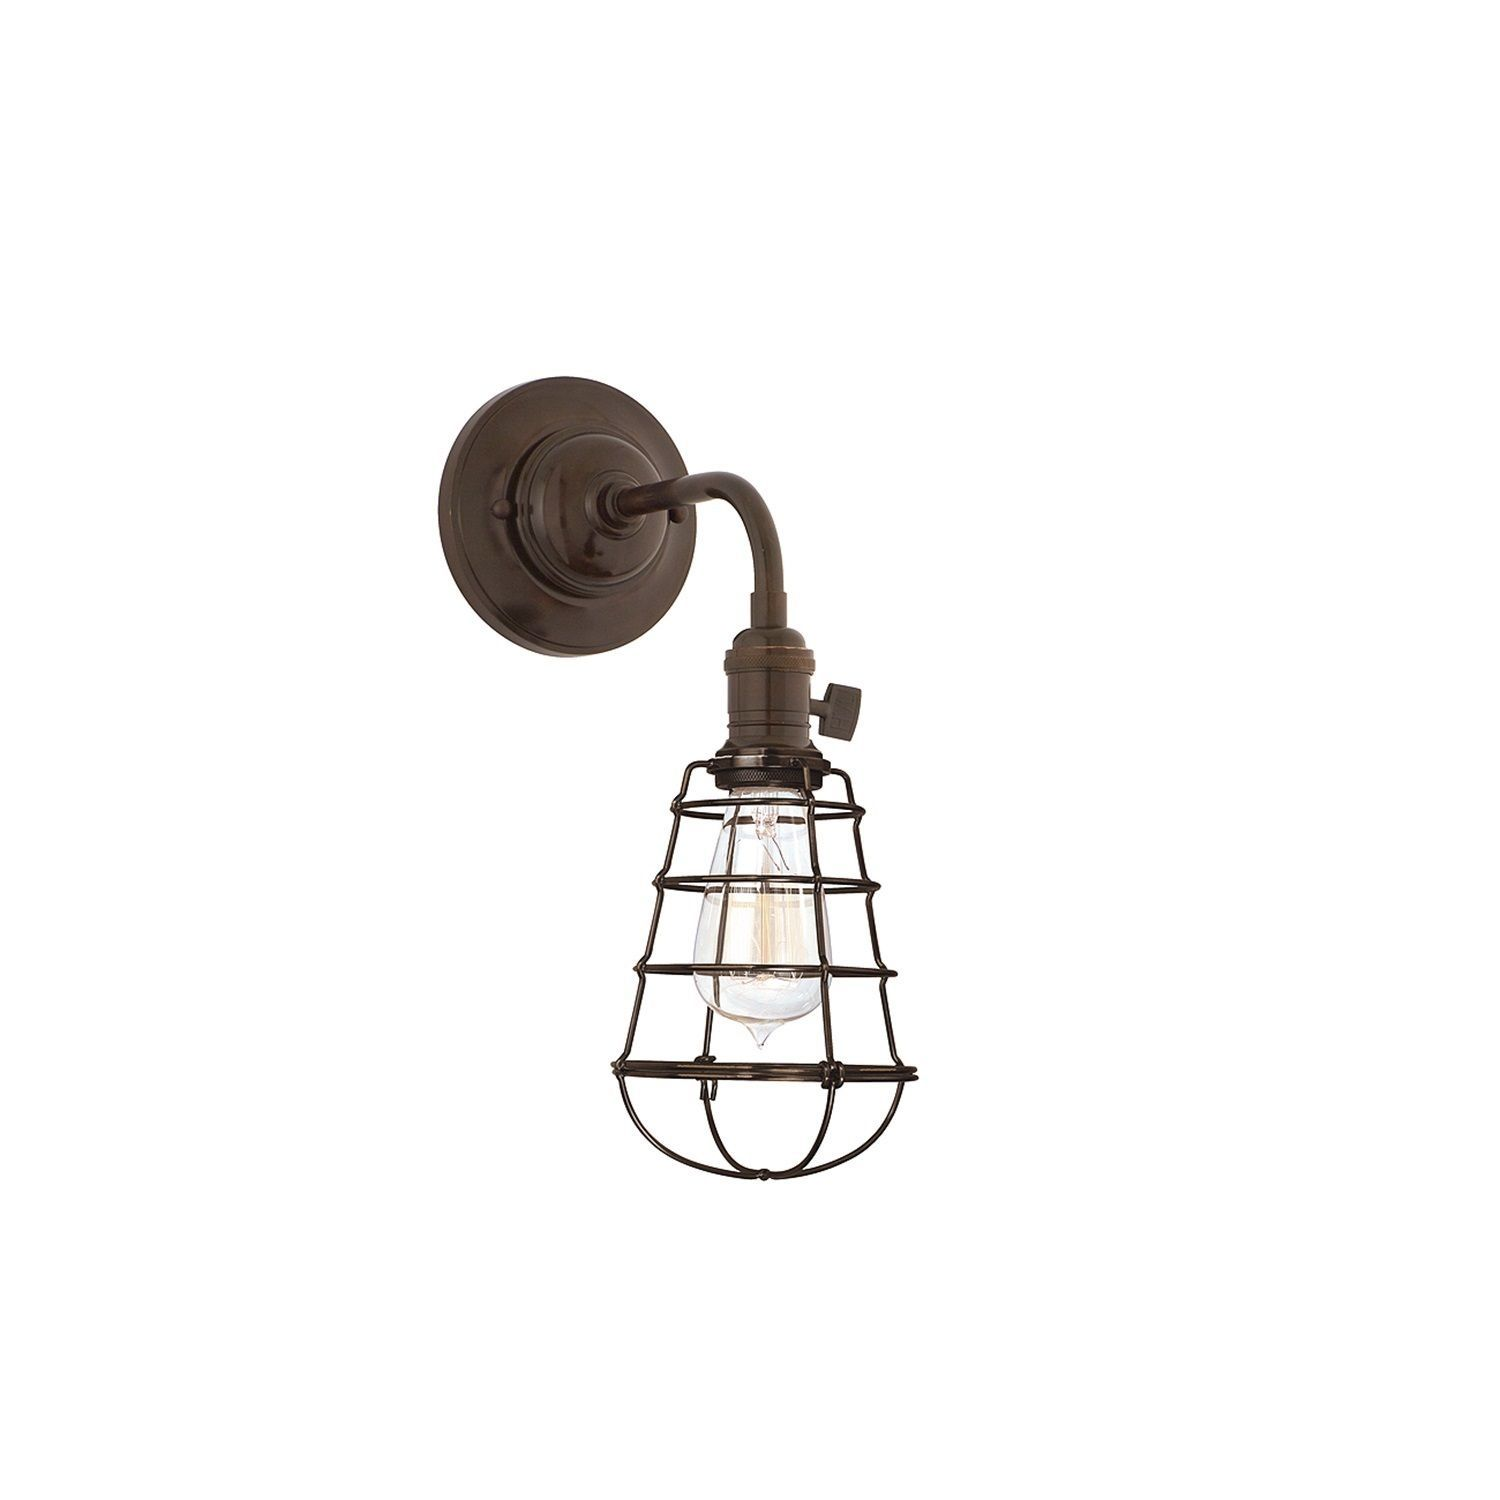 Hudson Valley Heirloom Bronze Wall Sconce with Wire Guard (Old Bronze), Brown (Metal)